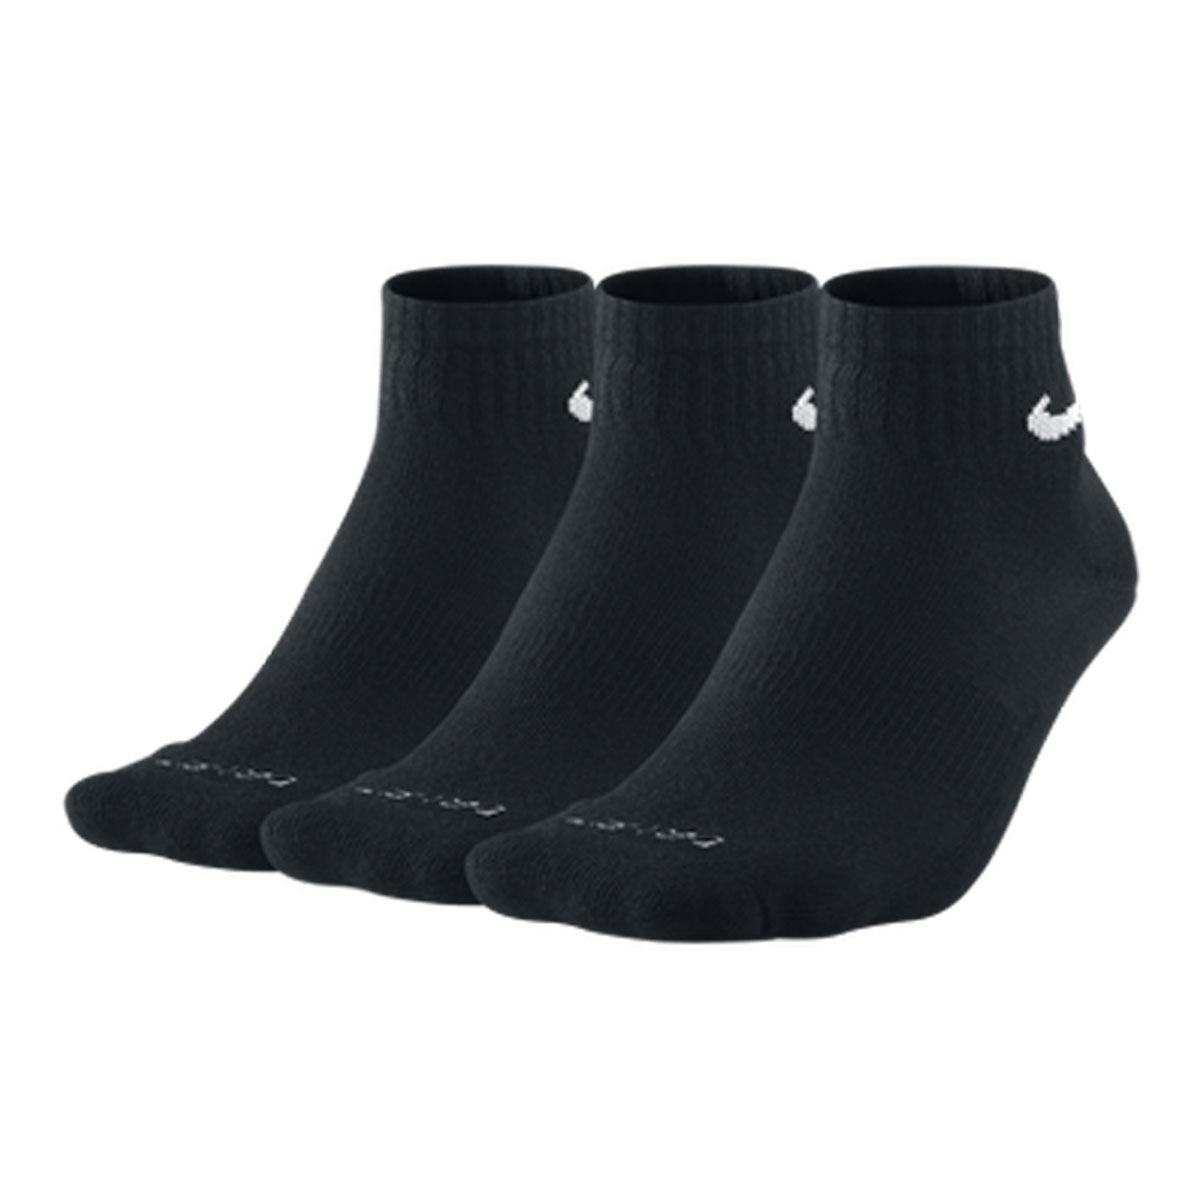 Nike-Golf-Mens-Dri-Fit-Quarter-Socks-Pack-of-3-Pairs-White-or-Black